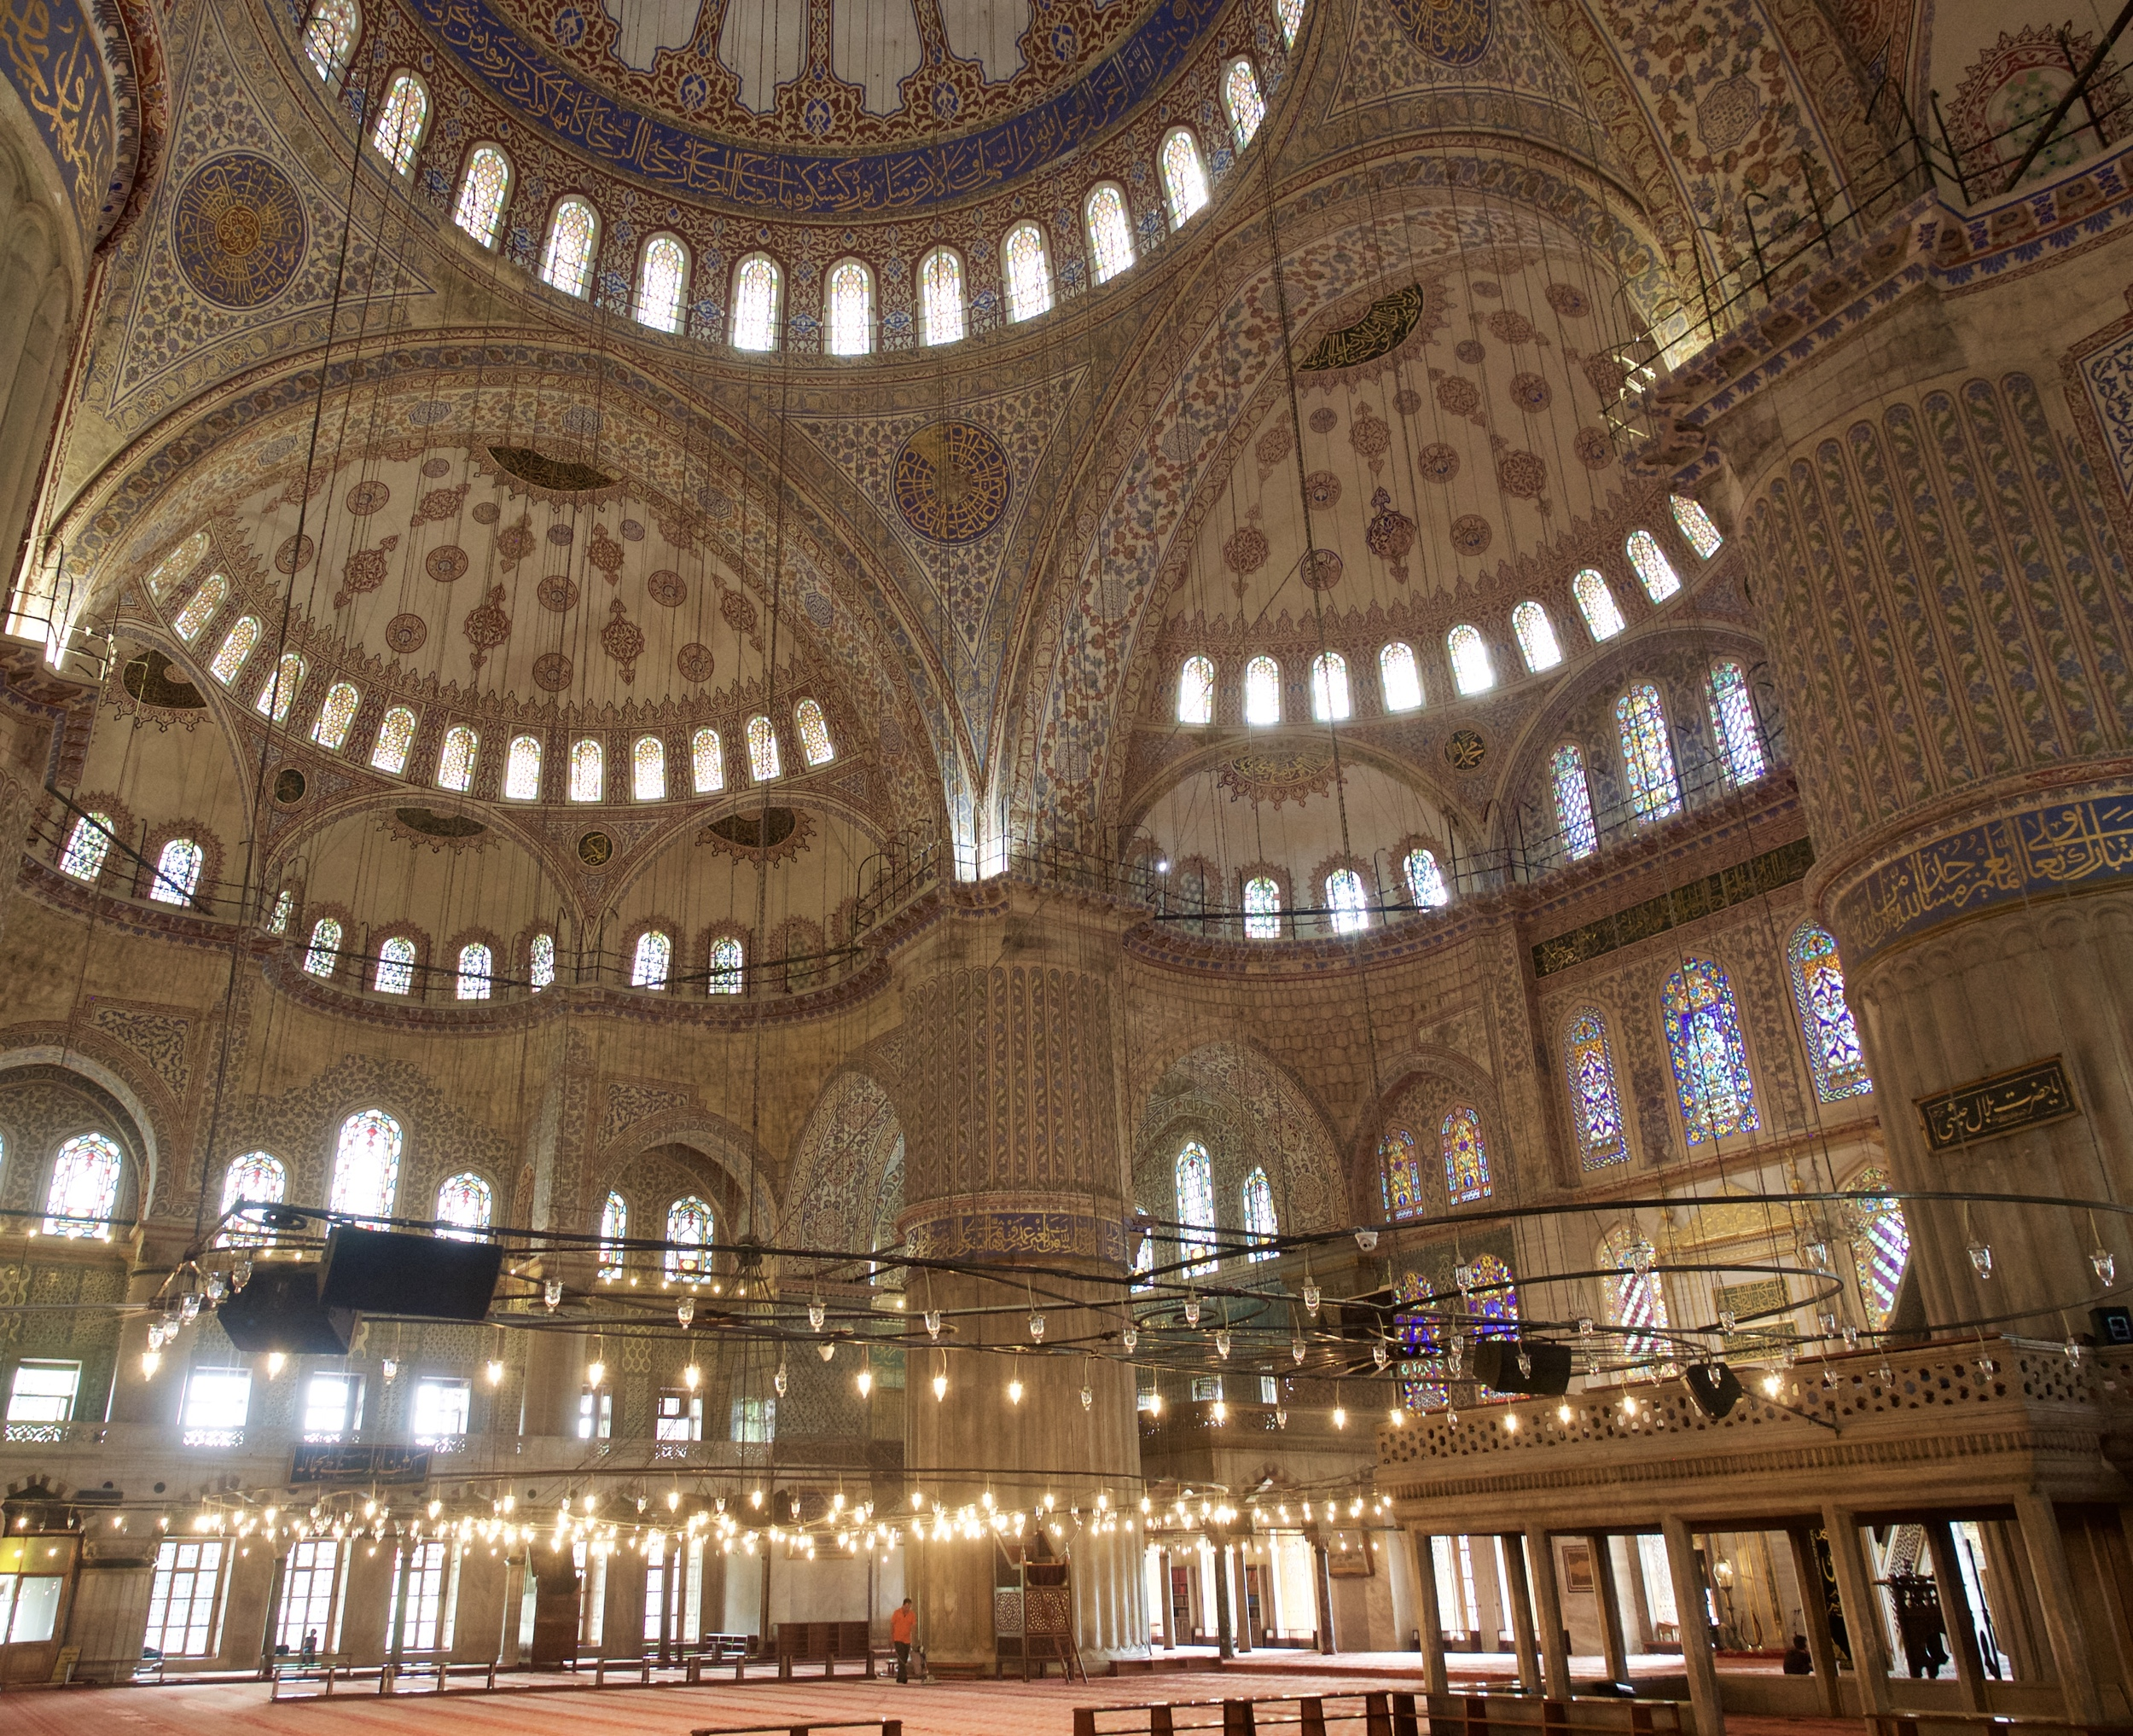 Inside the Blue Mosque in between prayers.